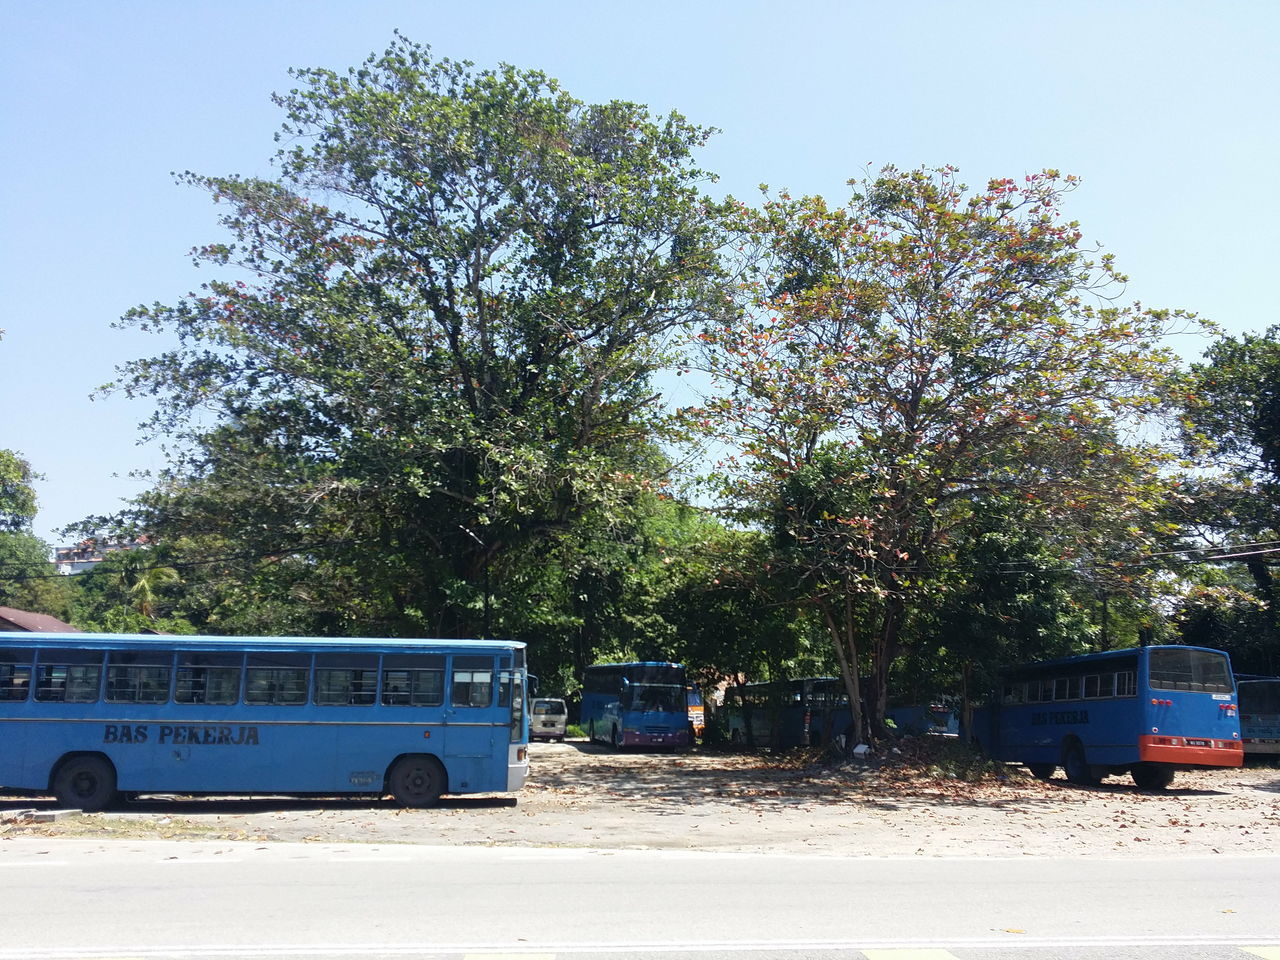 Tree Transportation Mode Of Transport Growth No People Outdoors Day Military Sky Factory Bus Bus